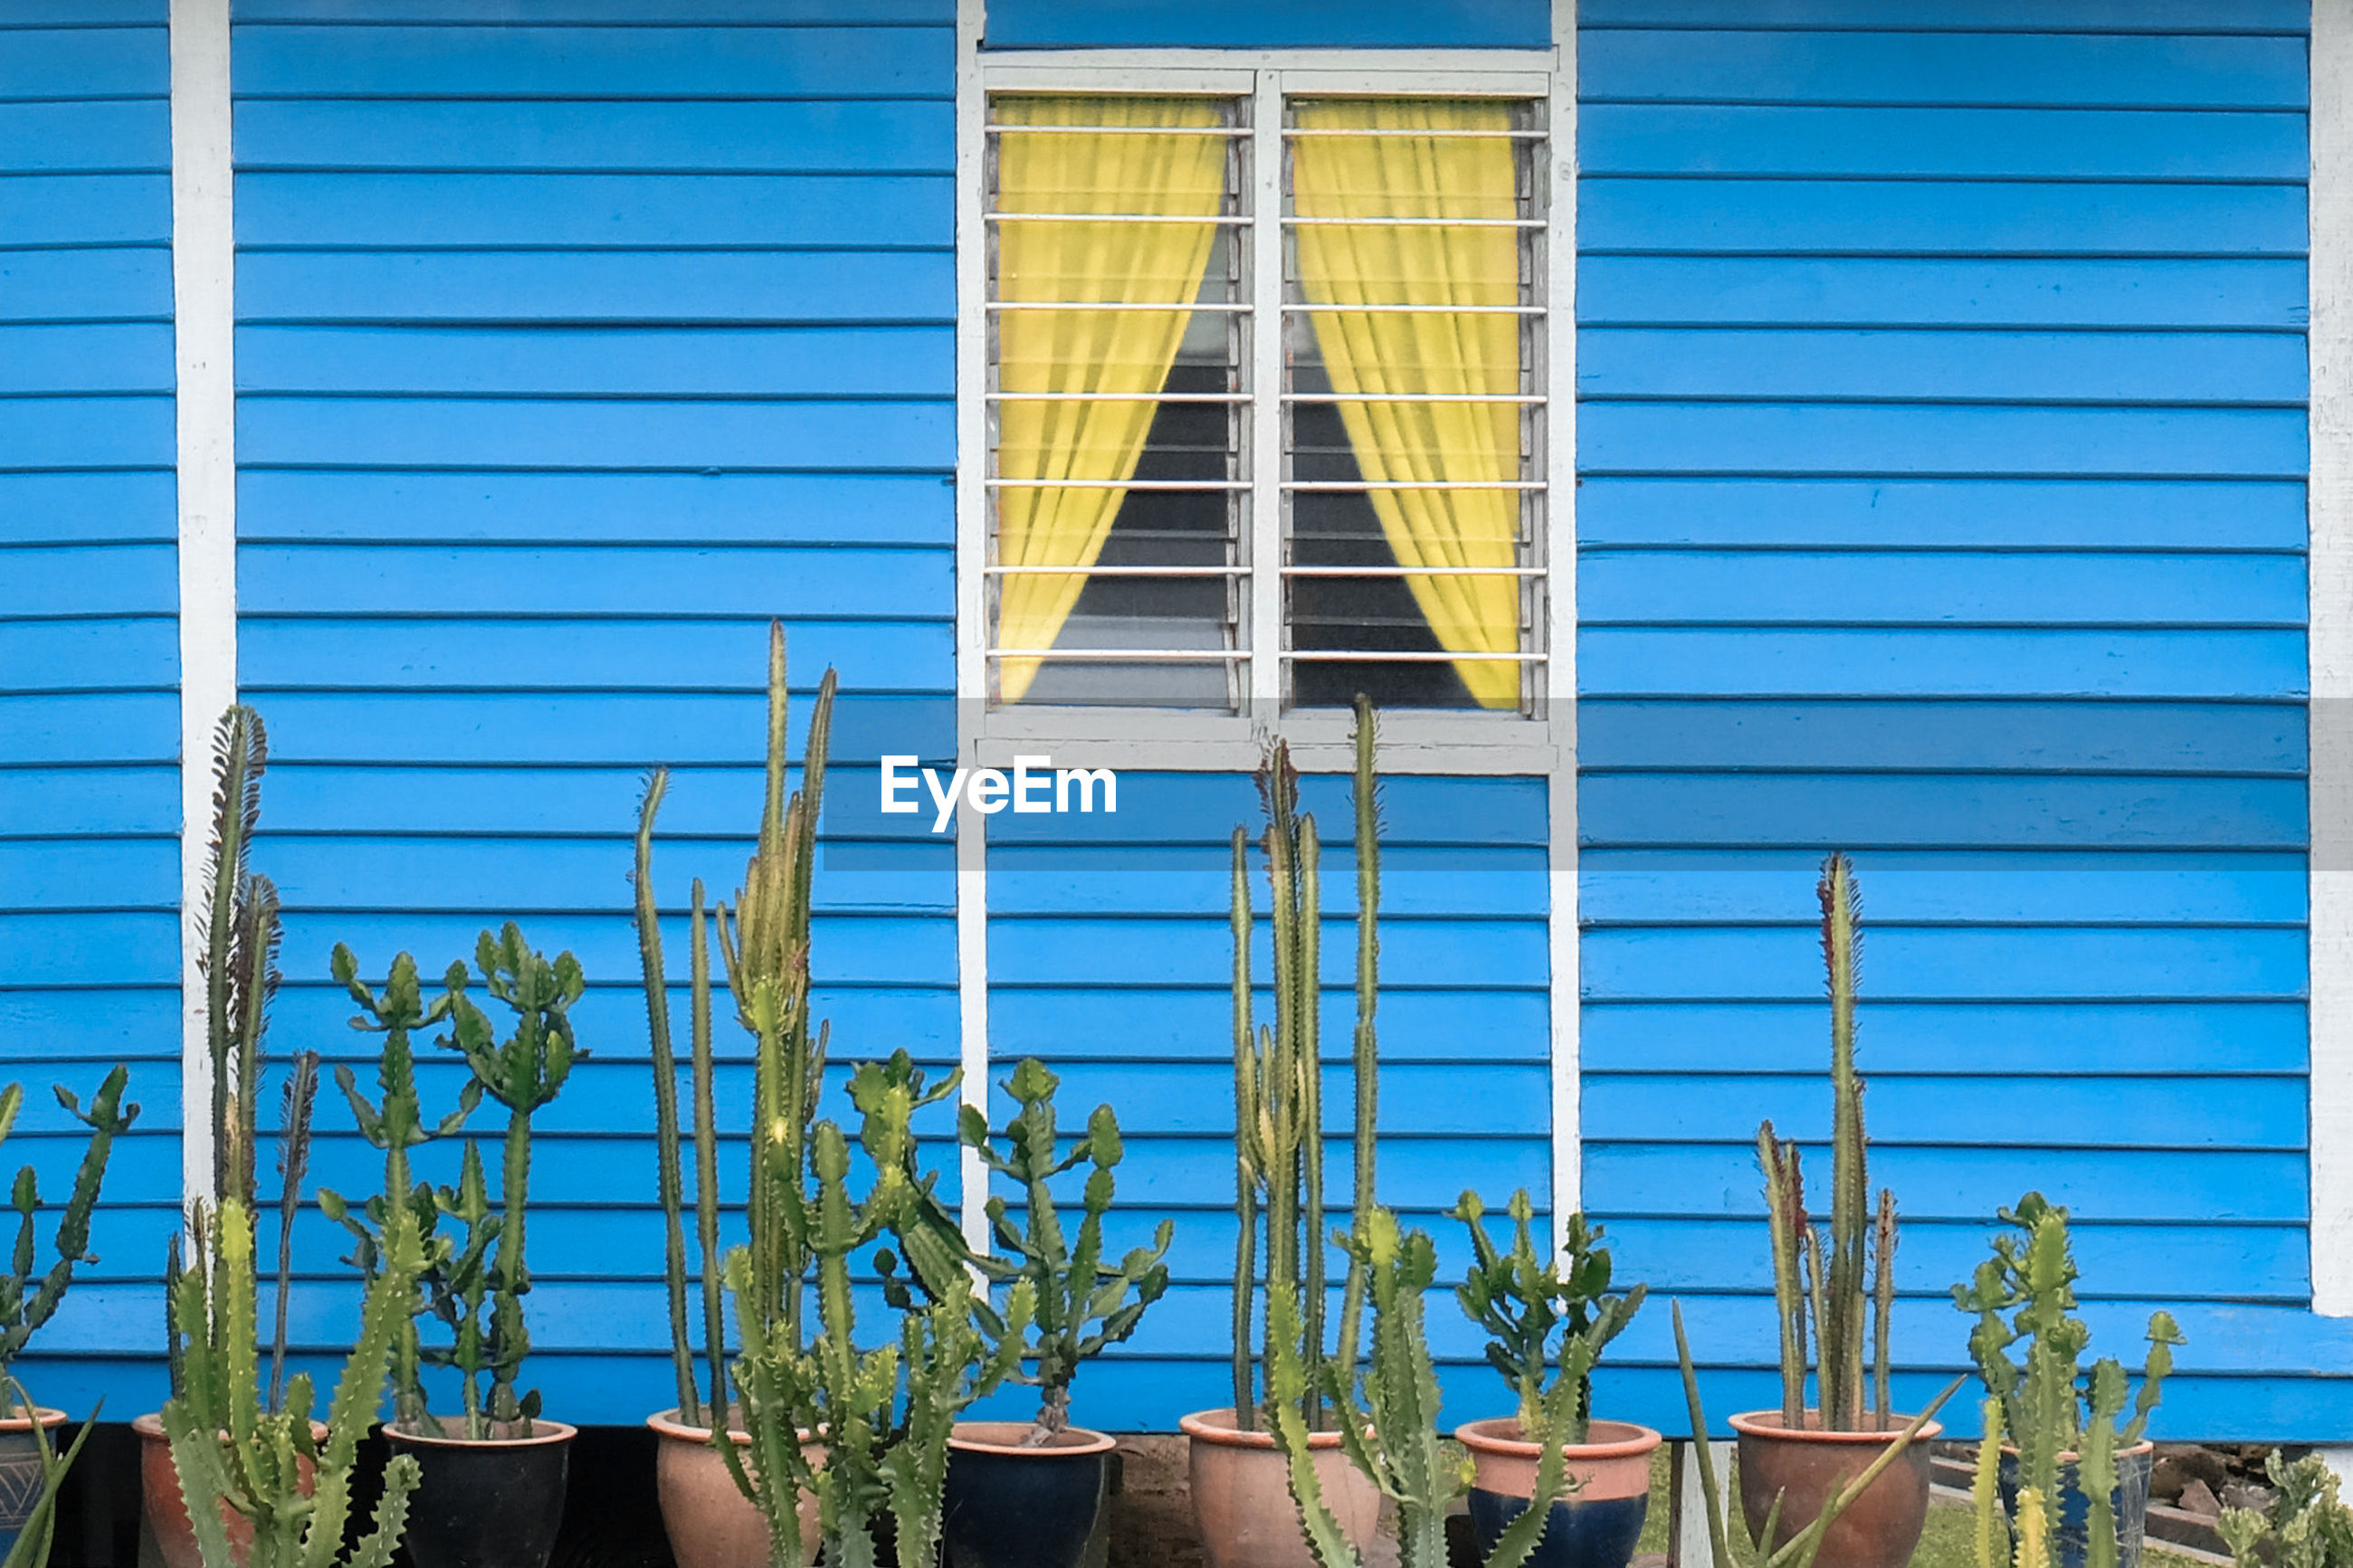 LOW ANGLE VIEW OF POTTED PLANTS AGAINST BLUE BUILDING